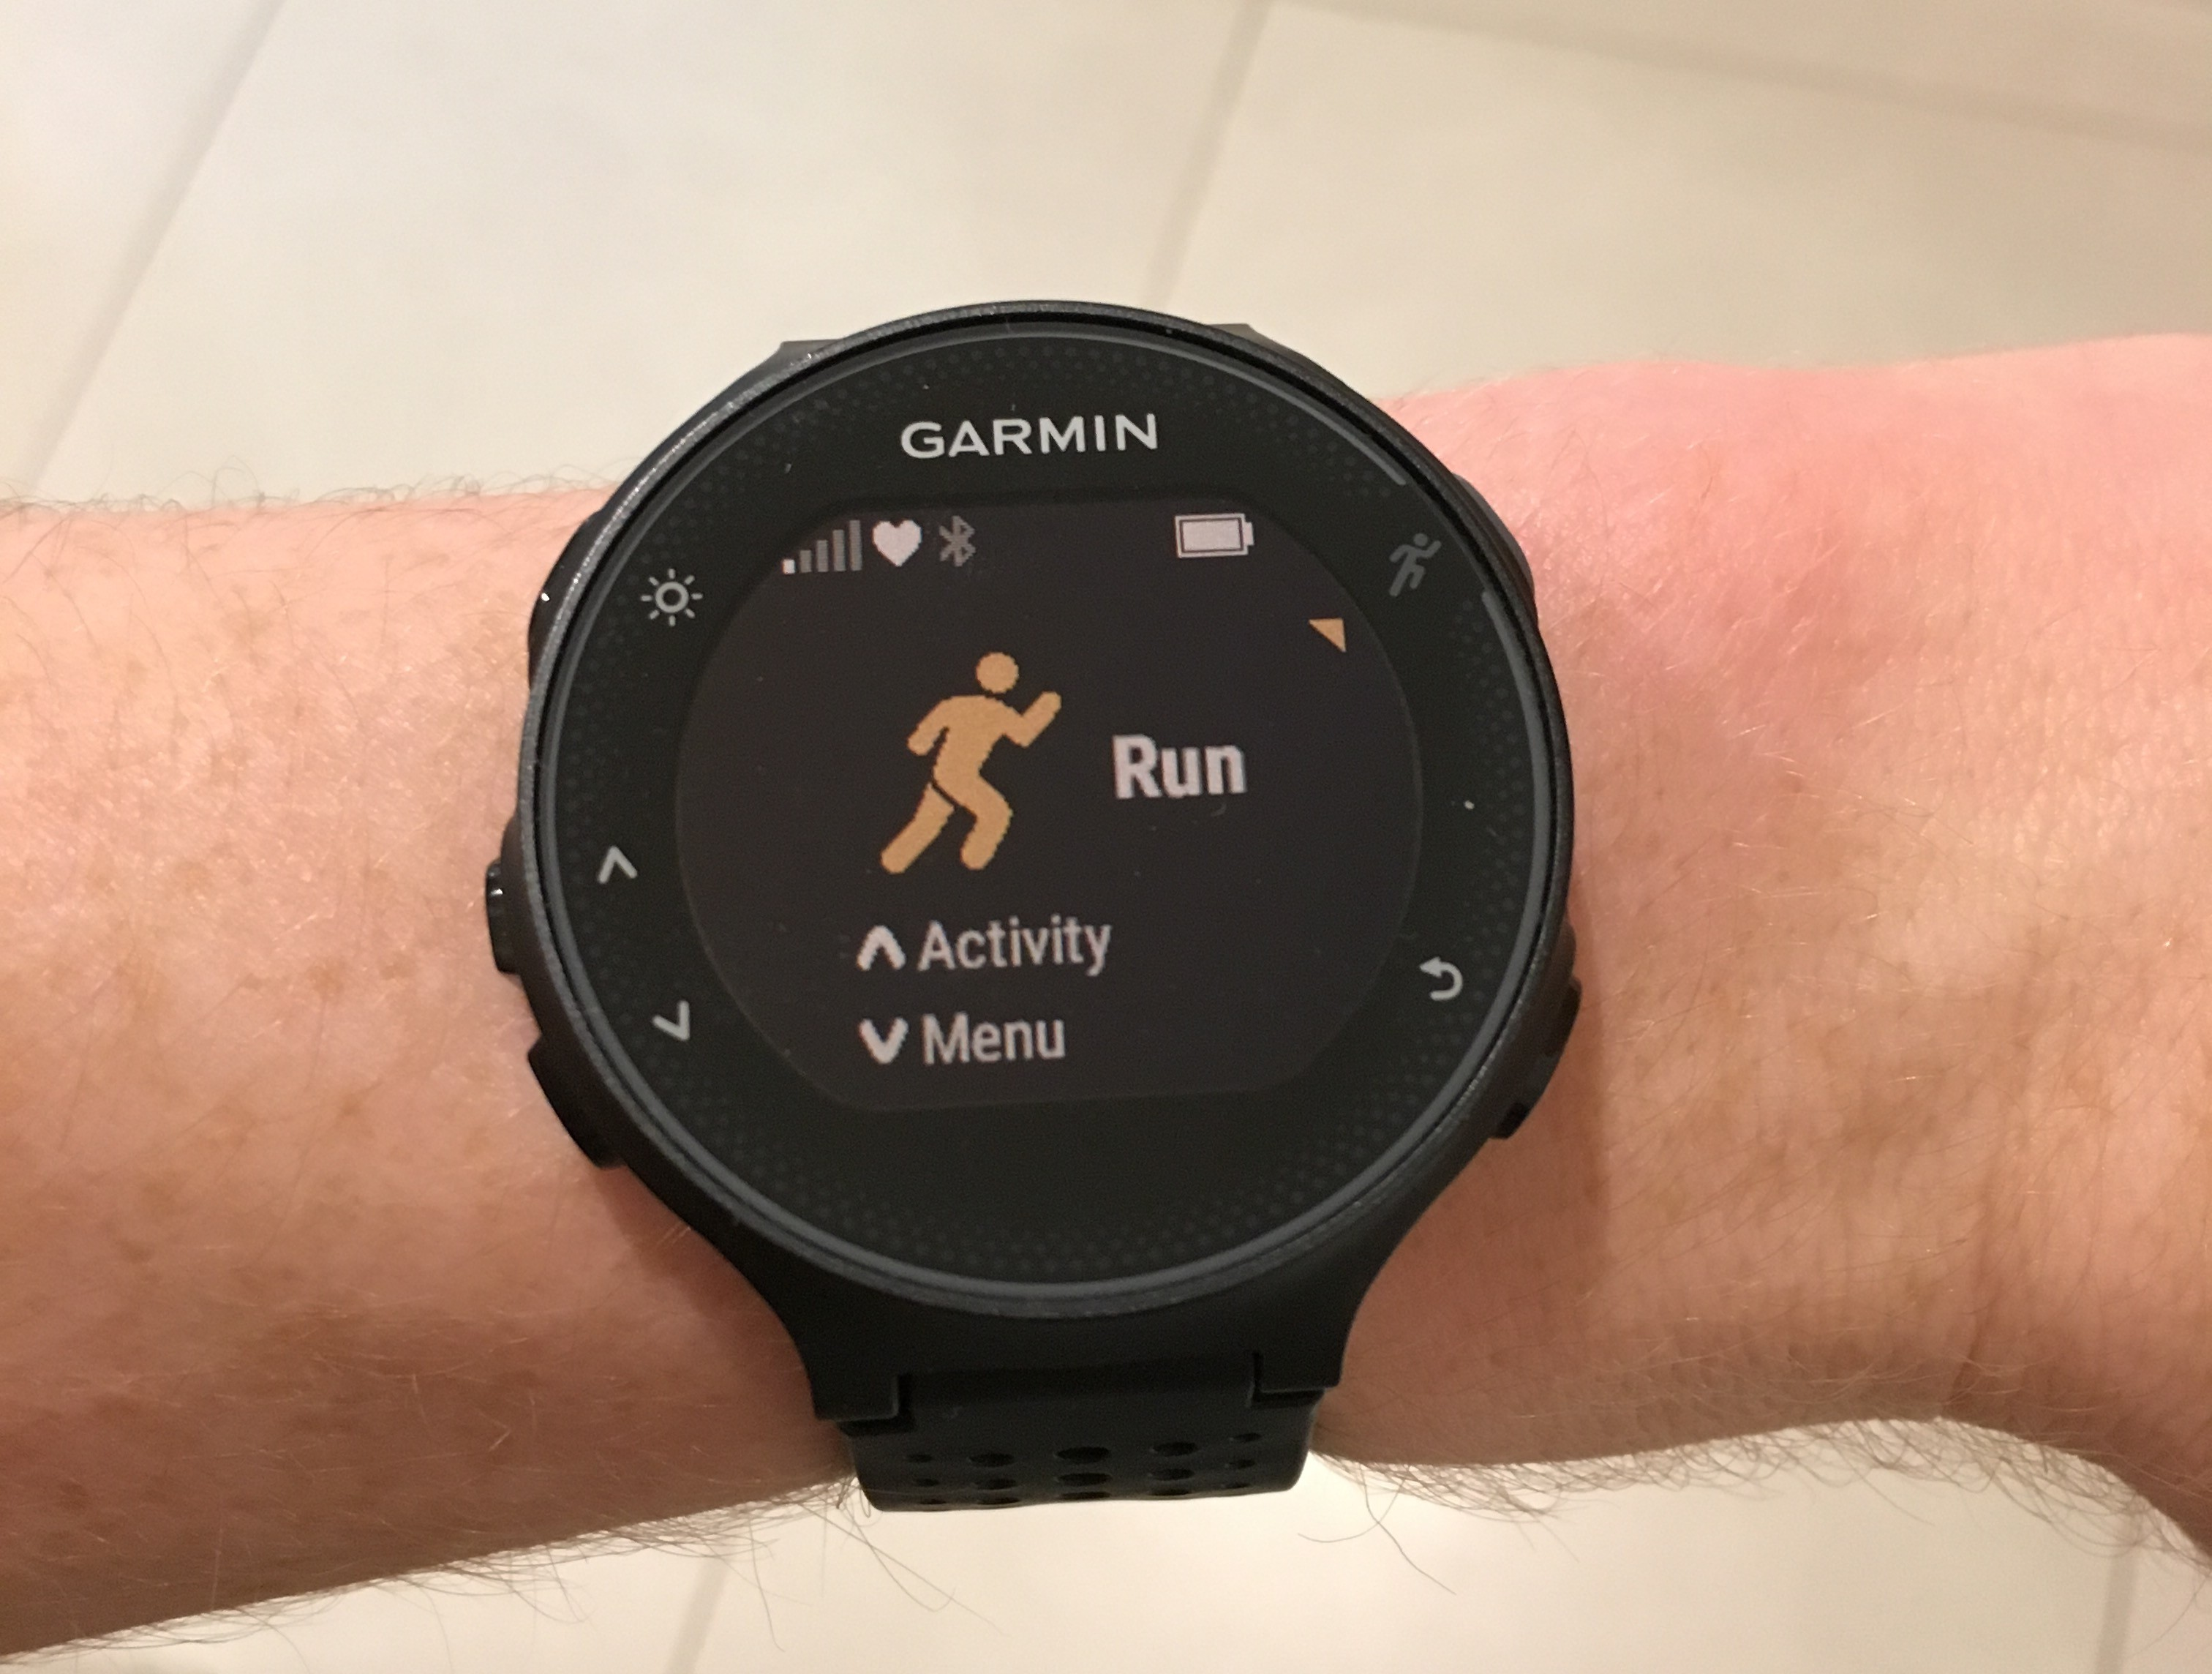 Watch with wrist hrm -  Run Activity Page